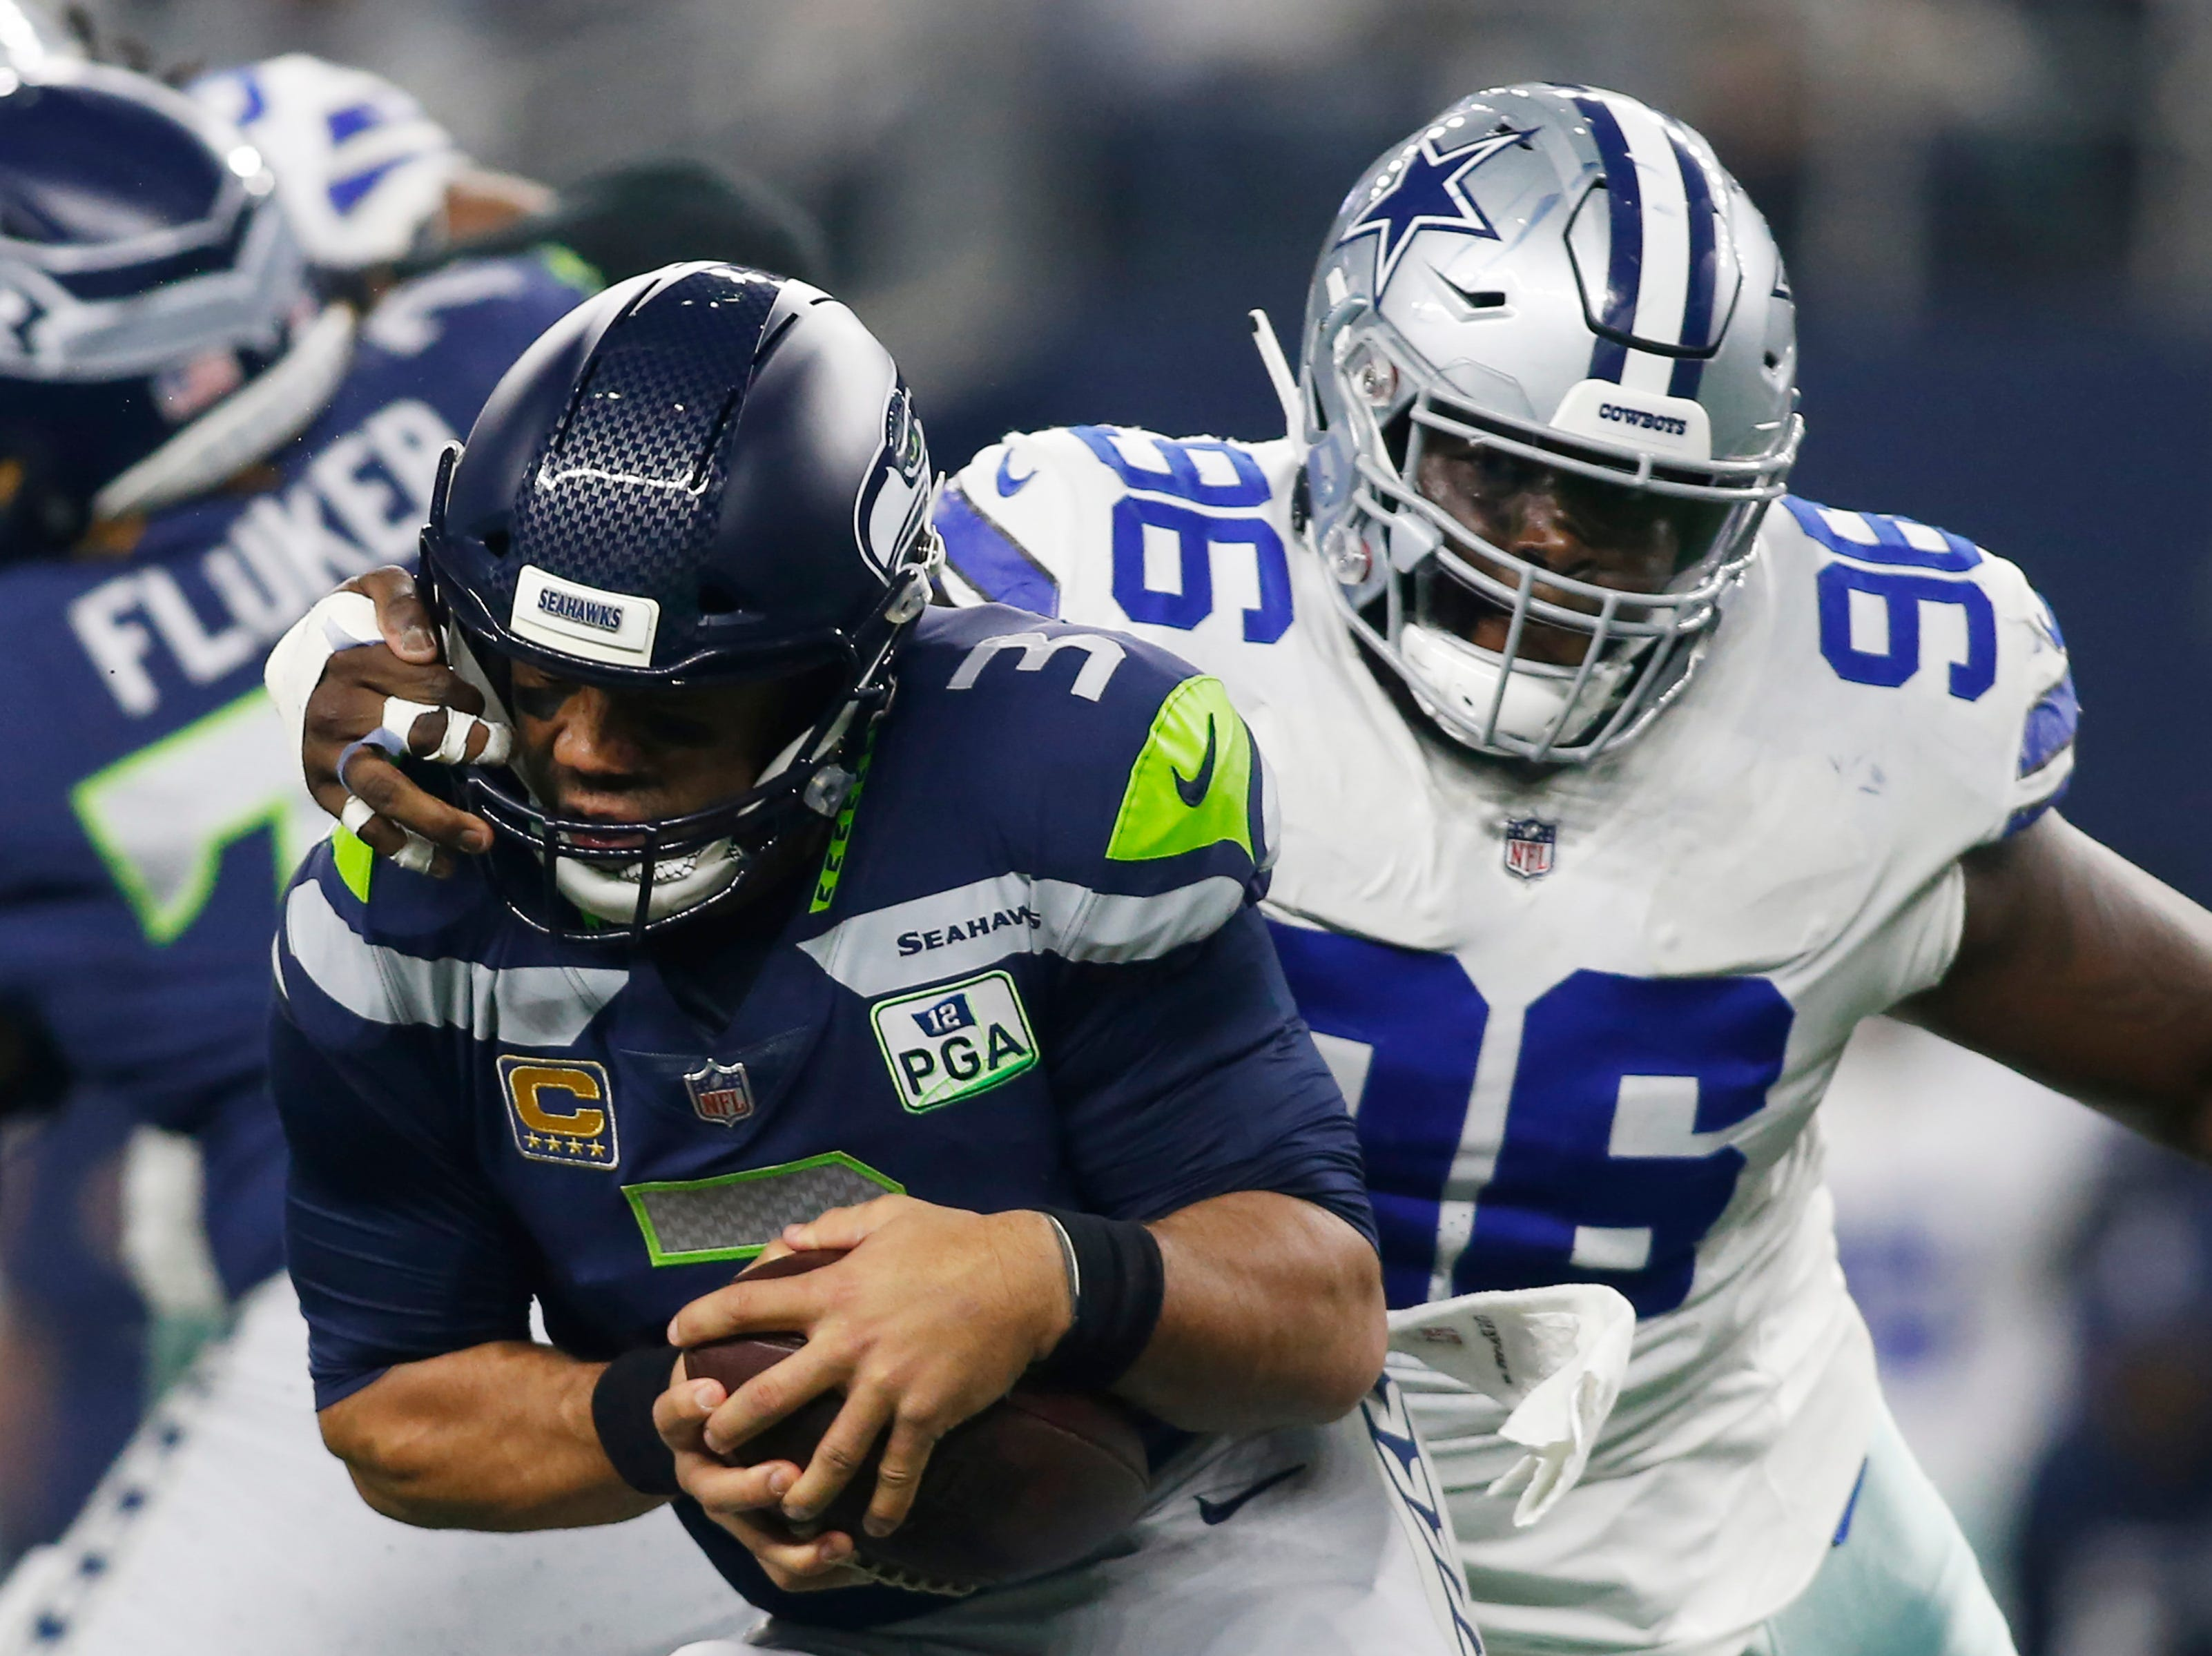 Seattle Seahawks quarterback Russell Wilson (3) is sacked by Dallas Cowboys defensive tackle Maliek Collins (96) in the first quarter at AT&T Stadium.